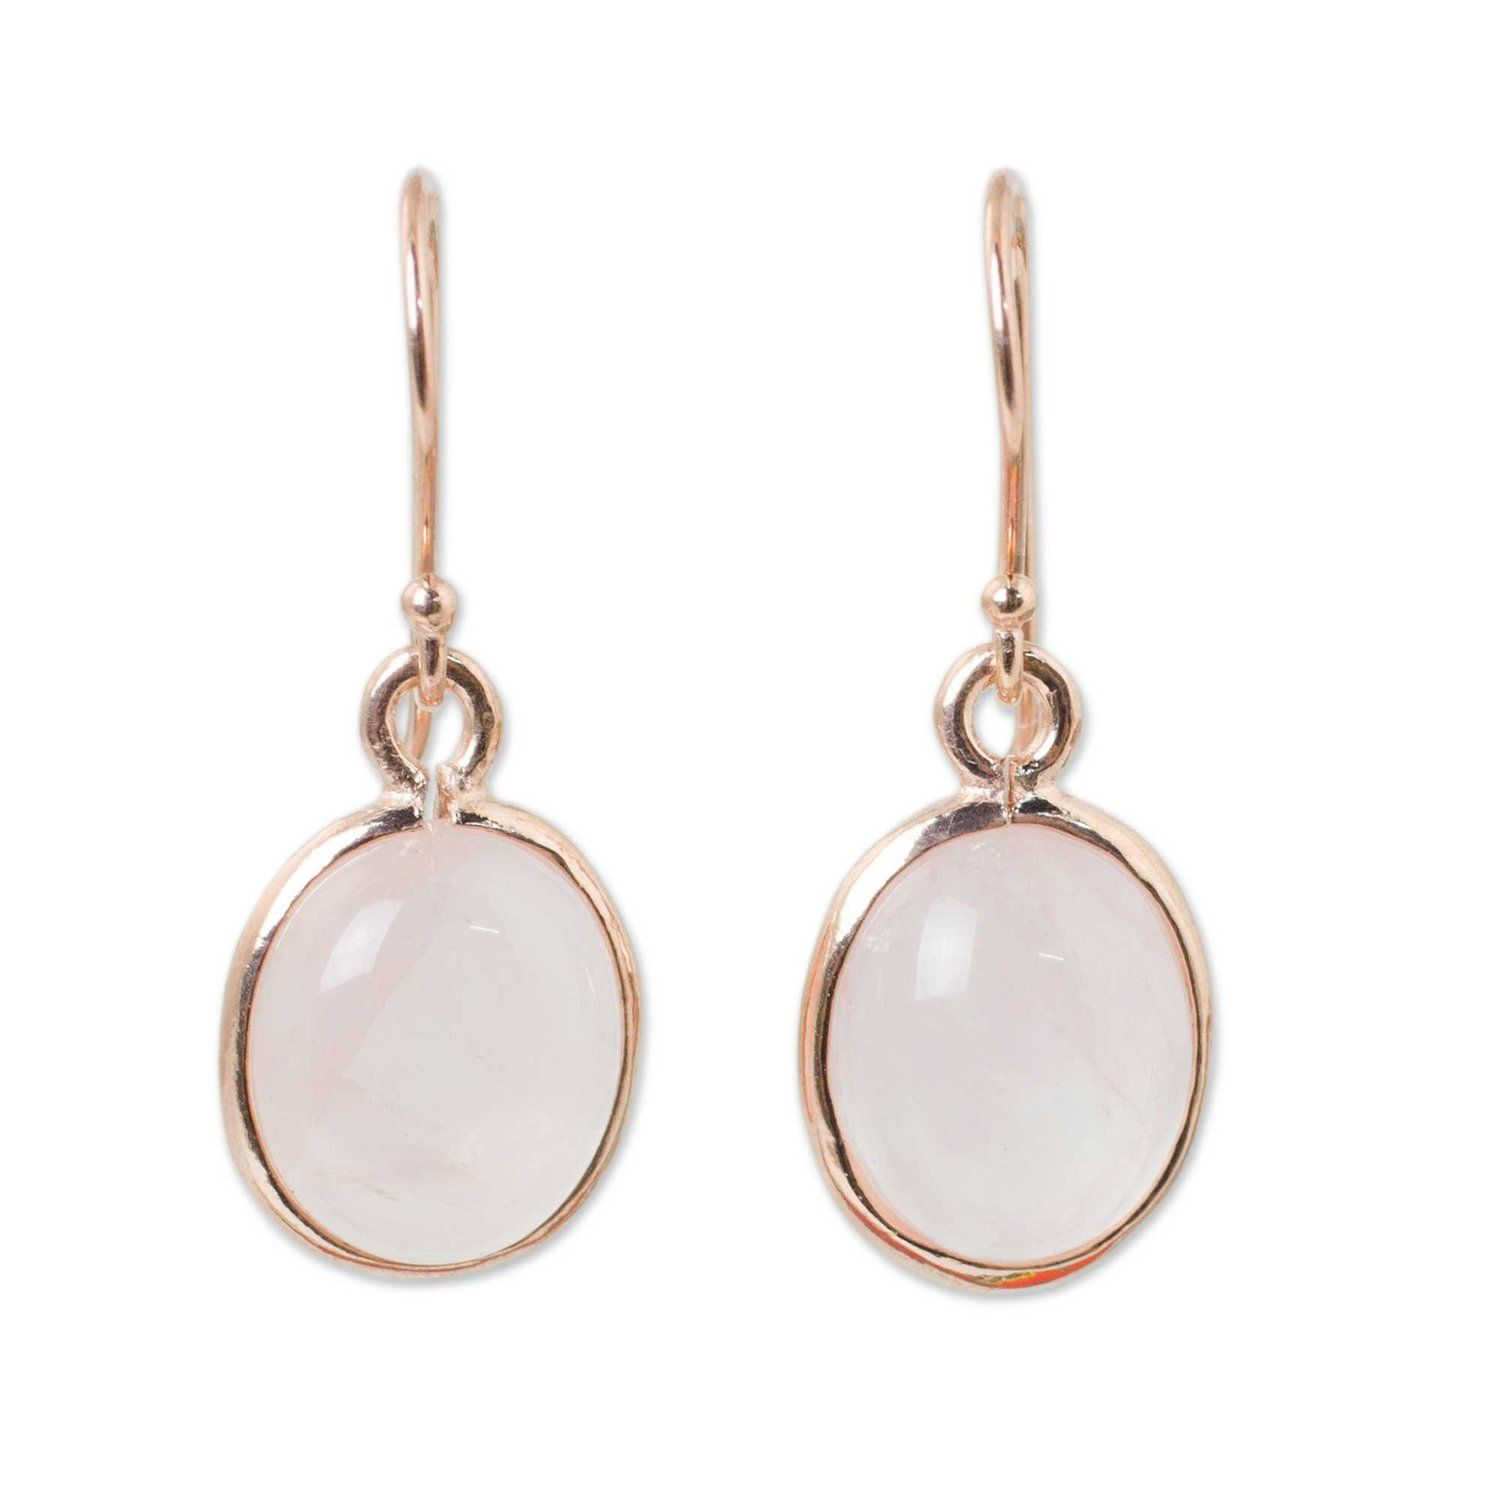 Amazon.com: NOVICA Rose Gold Plated Sterling Silver and Rose Quartz Dangle Earrings, 'Morning Rose': Jewelry